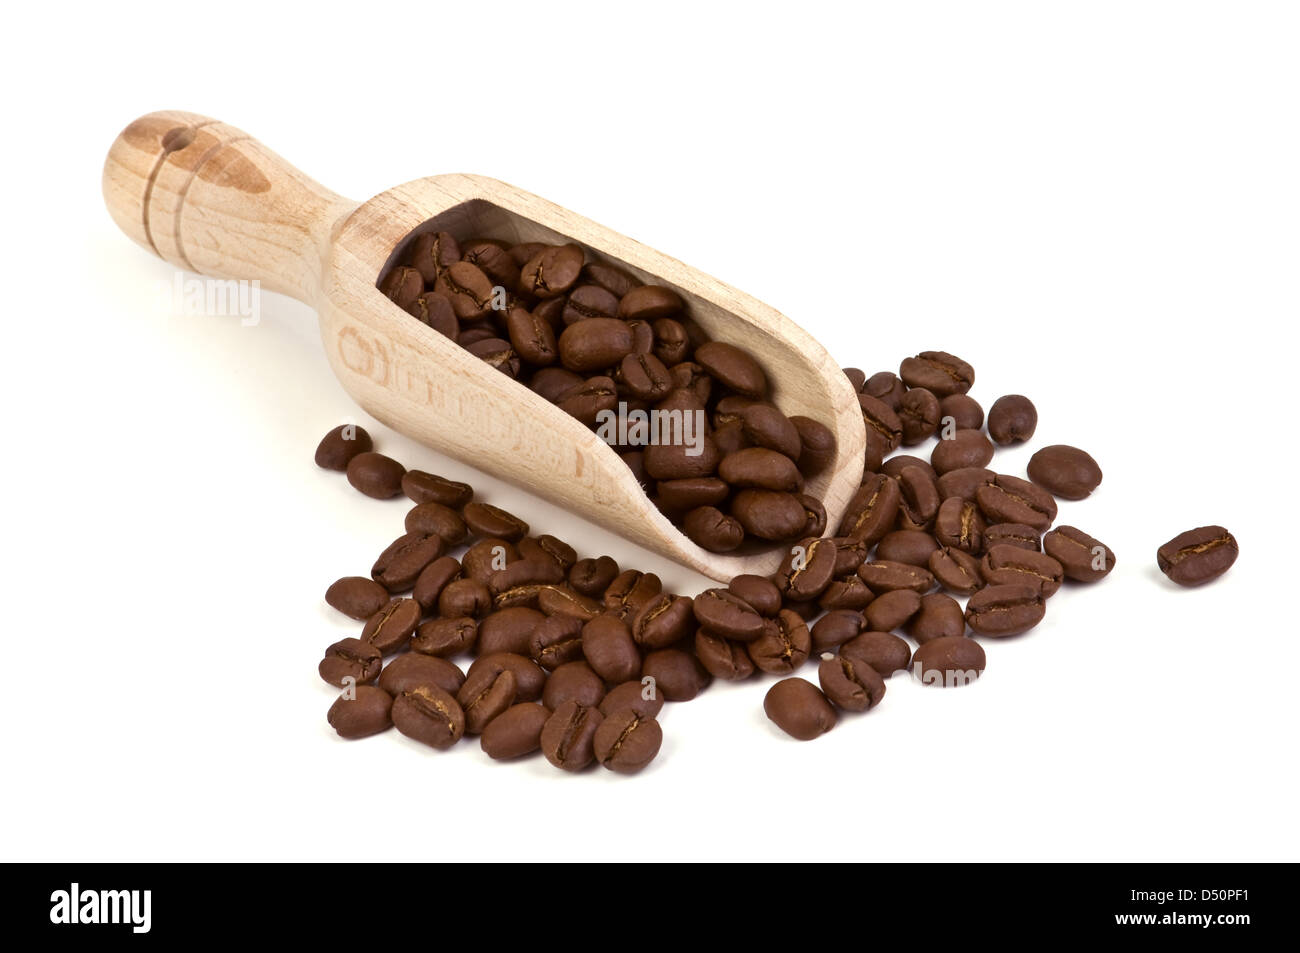 roasted coffee bean isolated on white - Stock Image